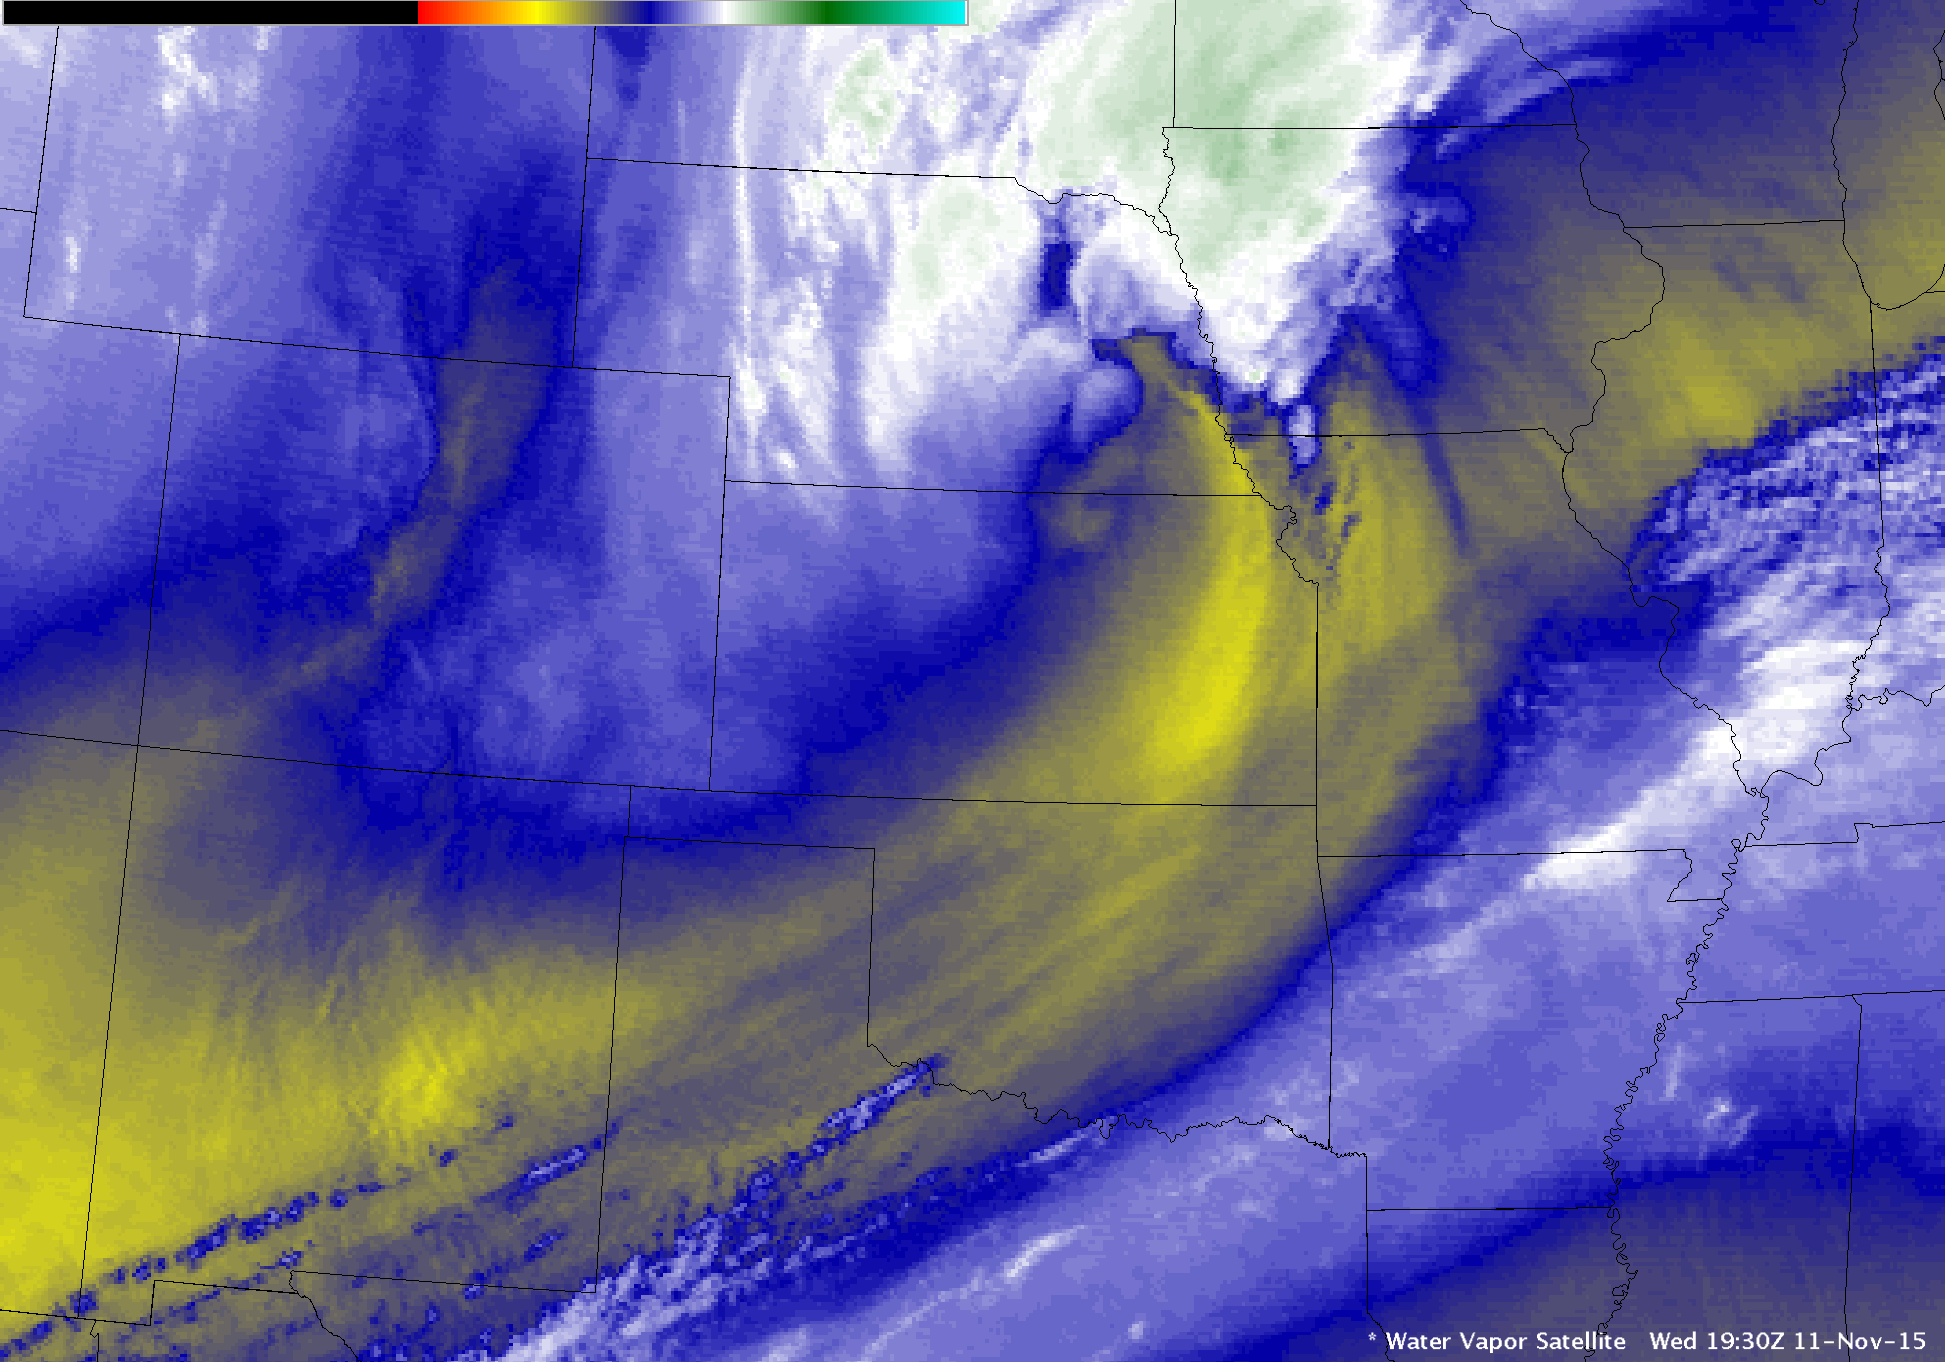 GOES-13 Water vapor (6.5 µm) images [click to play animation]